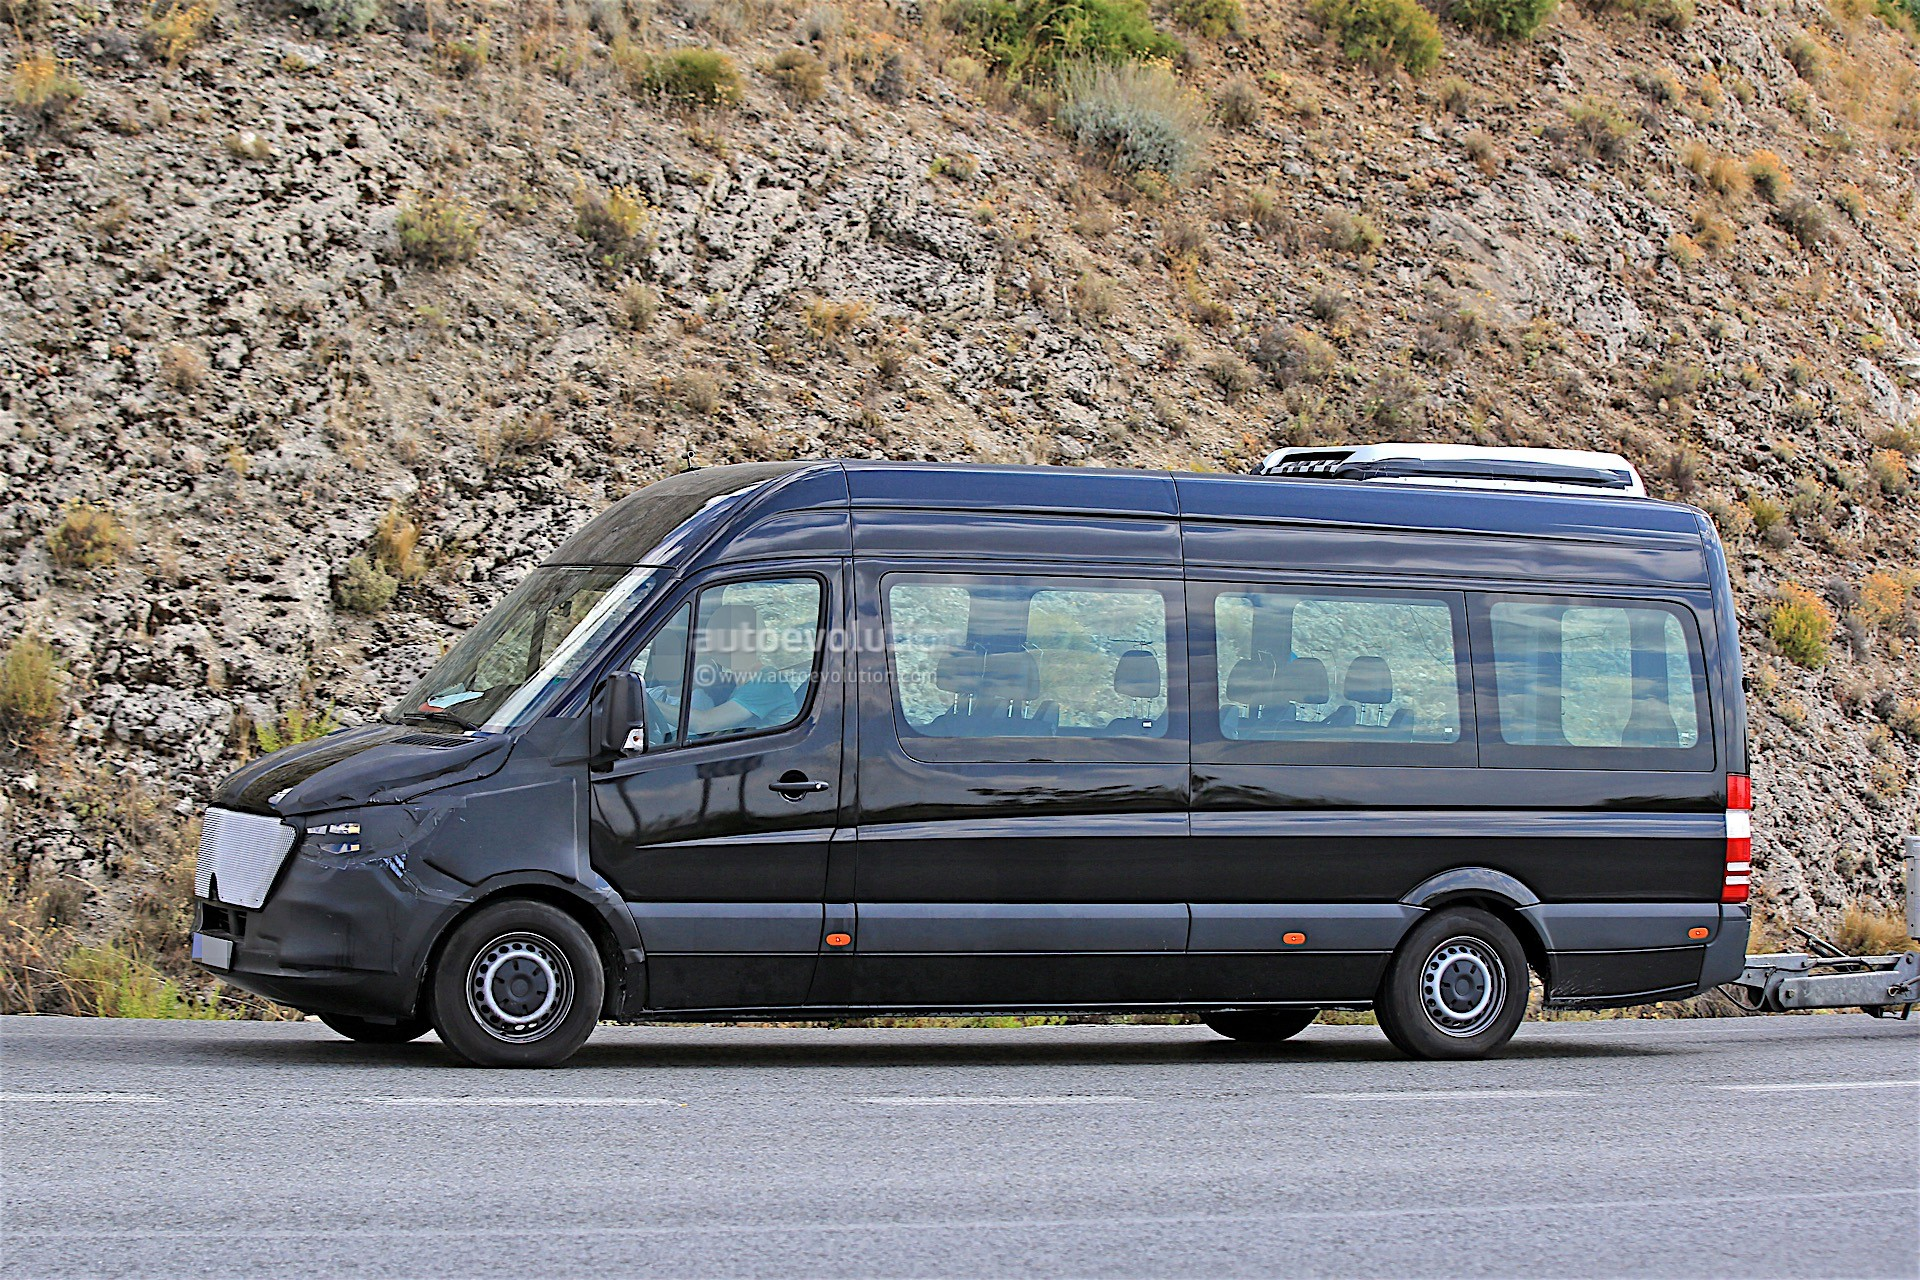 Mercedes Benz Sprinter Based Rv Reviewed By Autoblog Autoevolution